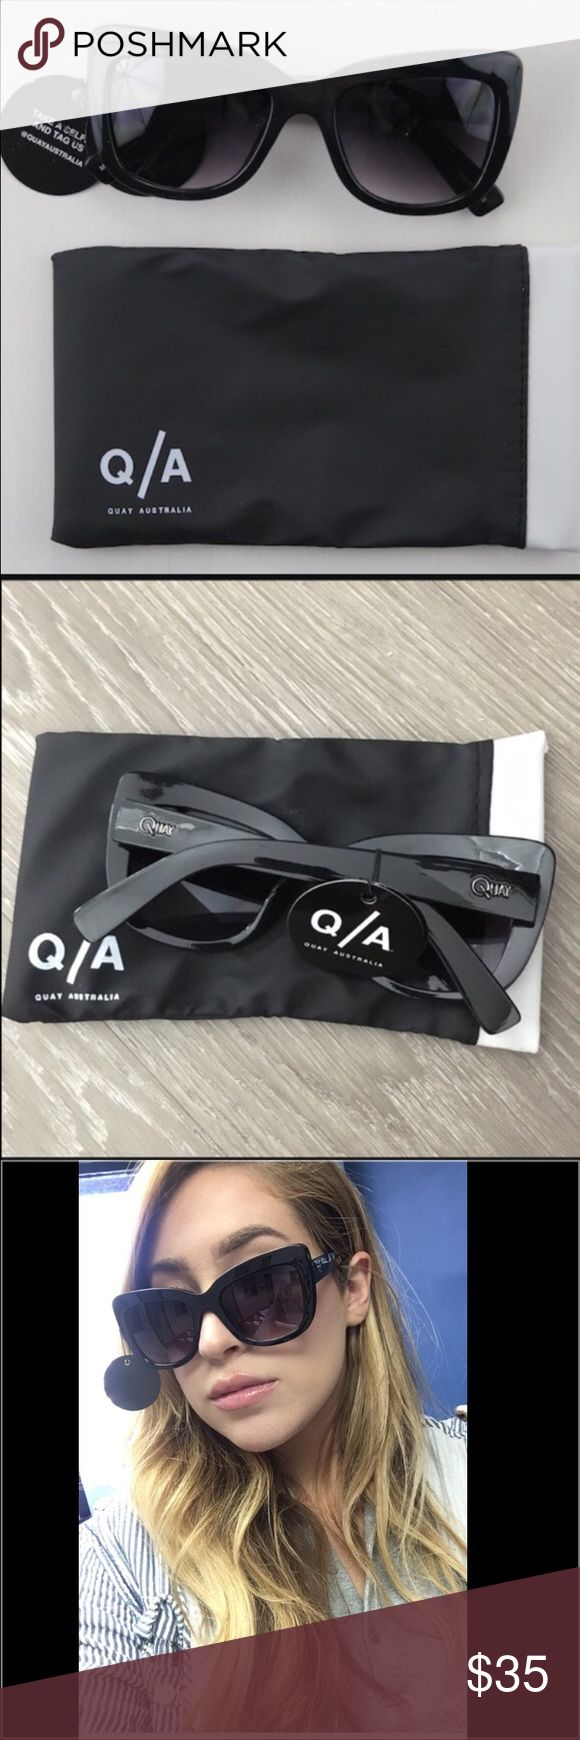 Quay Australian Sunglasses Quay Australian Sunglasses.  NWT.  Love this pair from Quay!  Perfect cat eye and smokey gray lenses. Quay Australia Accessories Glasses